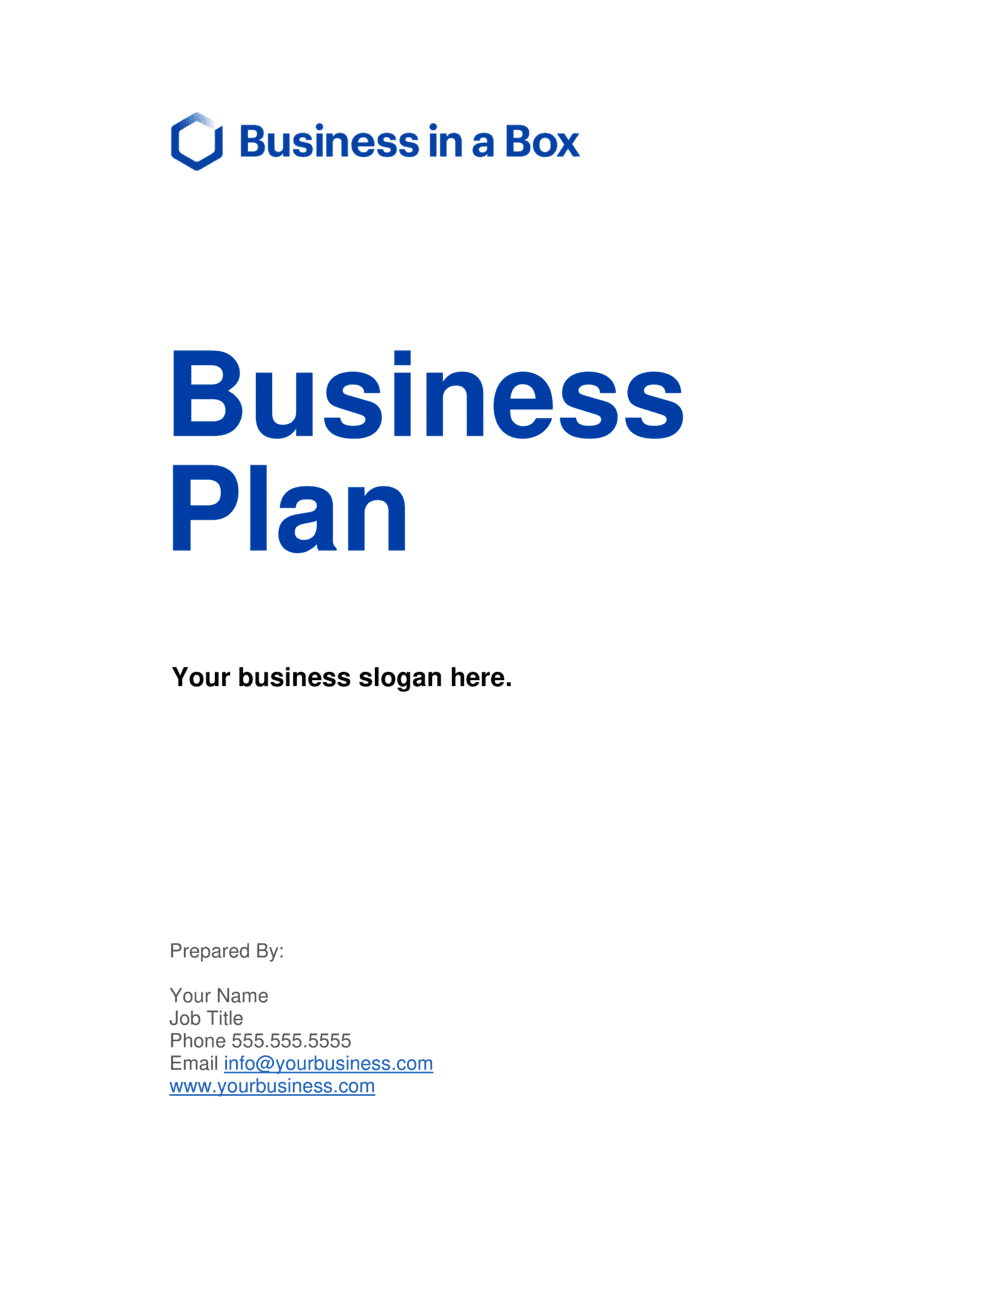 Business-in-a-Box's Business Plan Template - Short Version Template